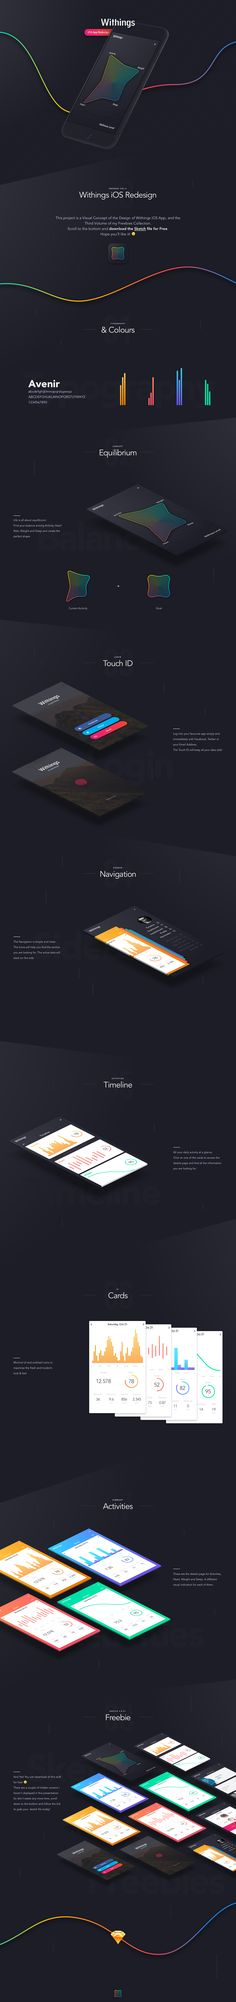 This project is a Visual Concept of the Design of Withings iOS App, and the Third Volume of my Freebies Collection. Ui Design Mobile, App Design, Layout Design, Flat Design, Web Layout, Design Thinking, Application Ui Design, User Experience Design, Ui Design Inspiration